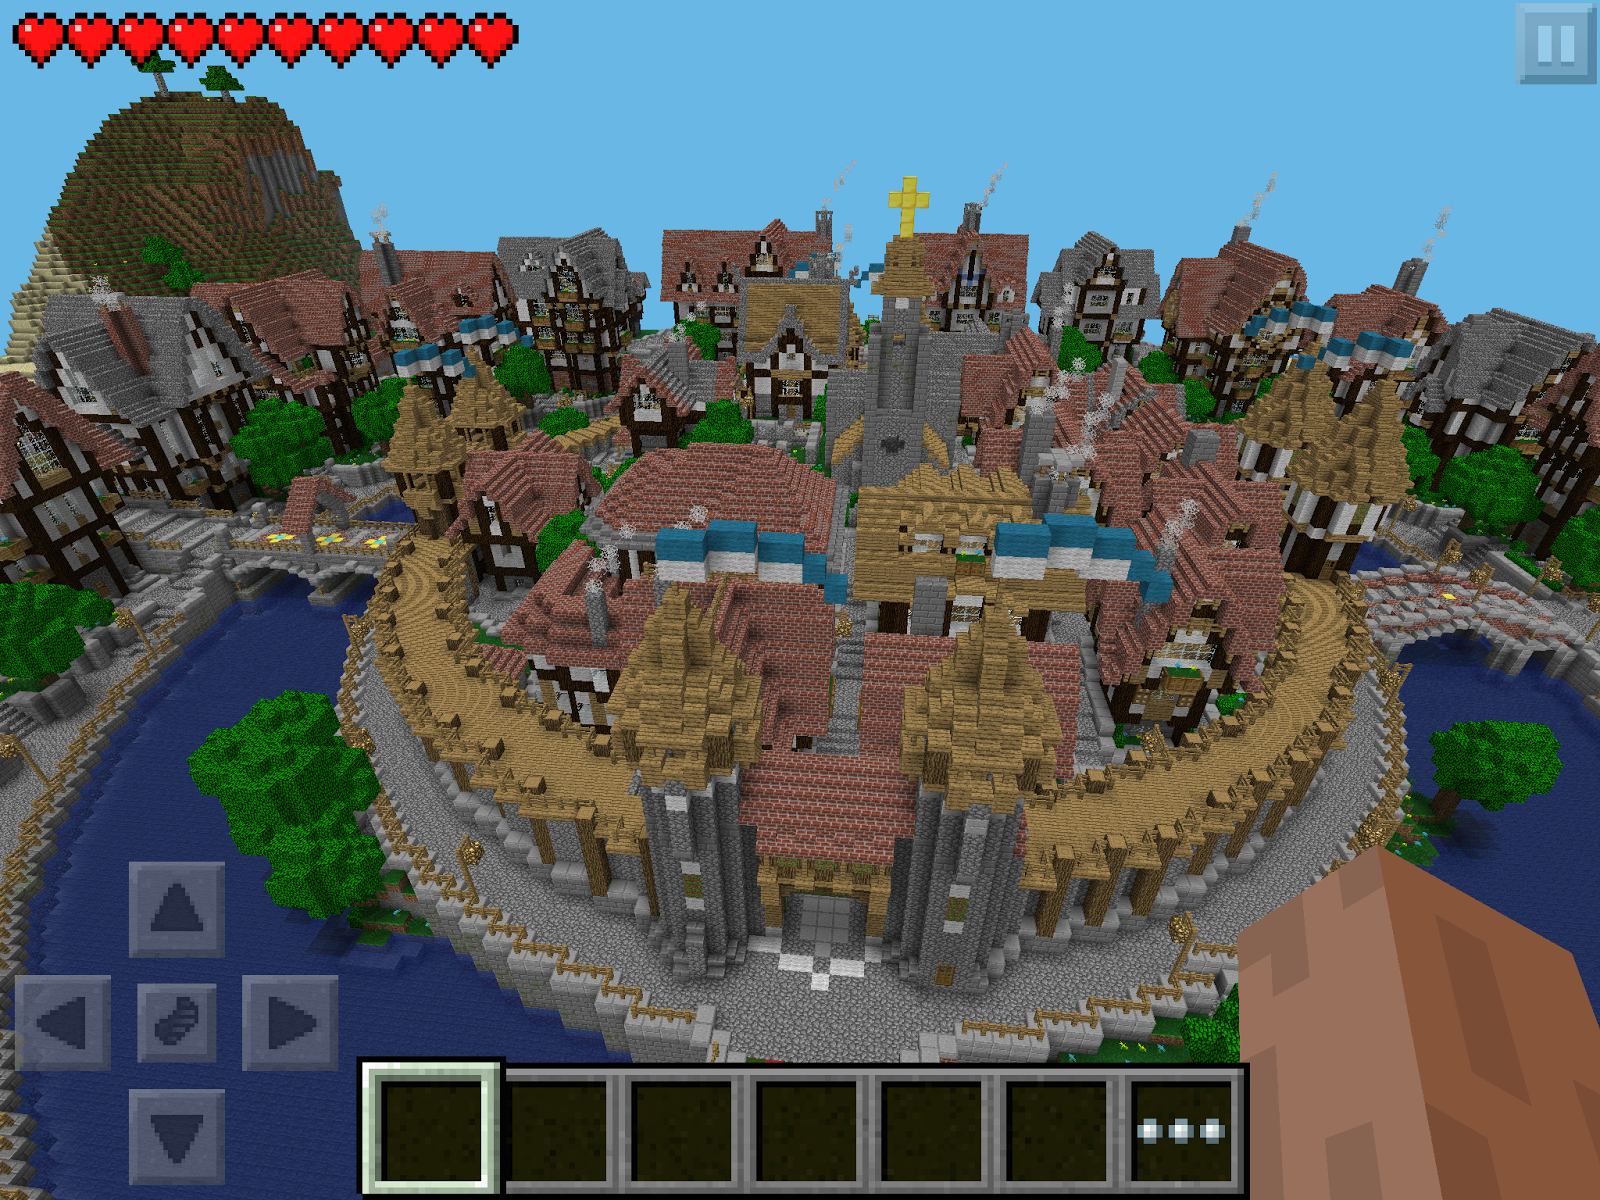 Mincraft Pe Maps Minecraft PE Worlds: Download Maps